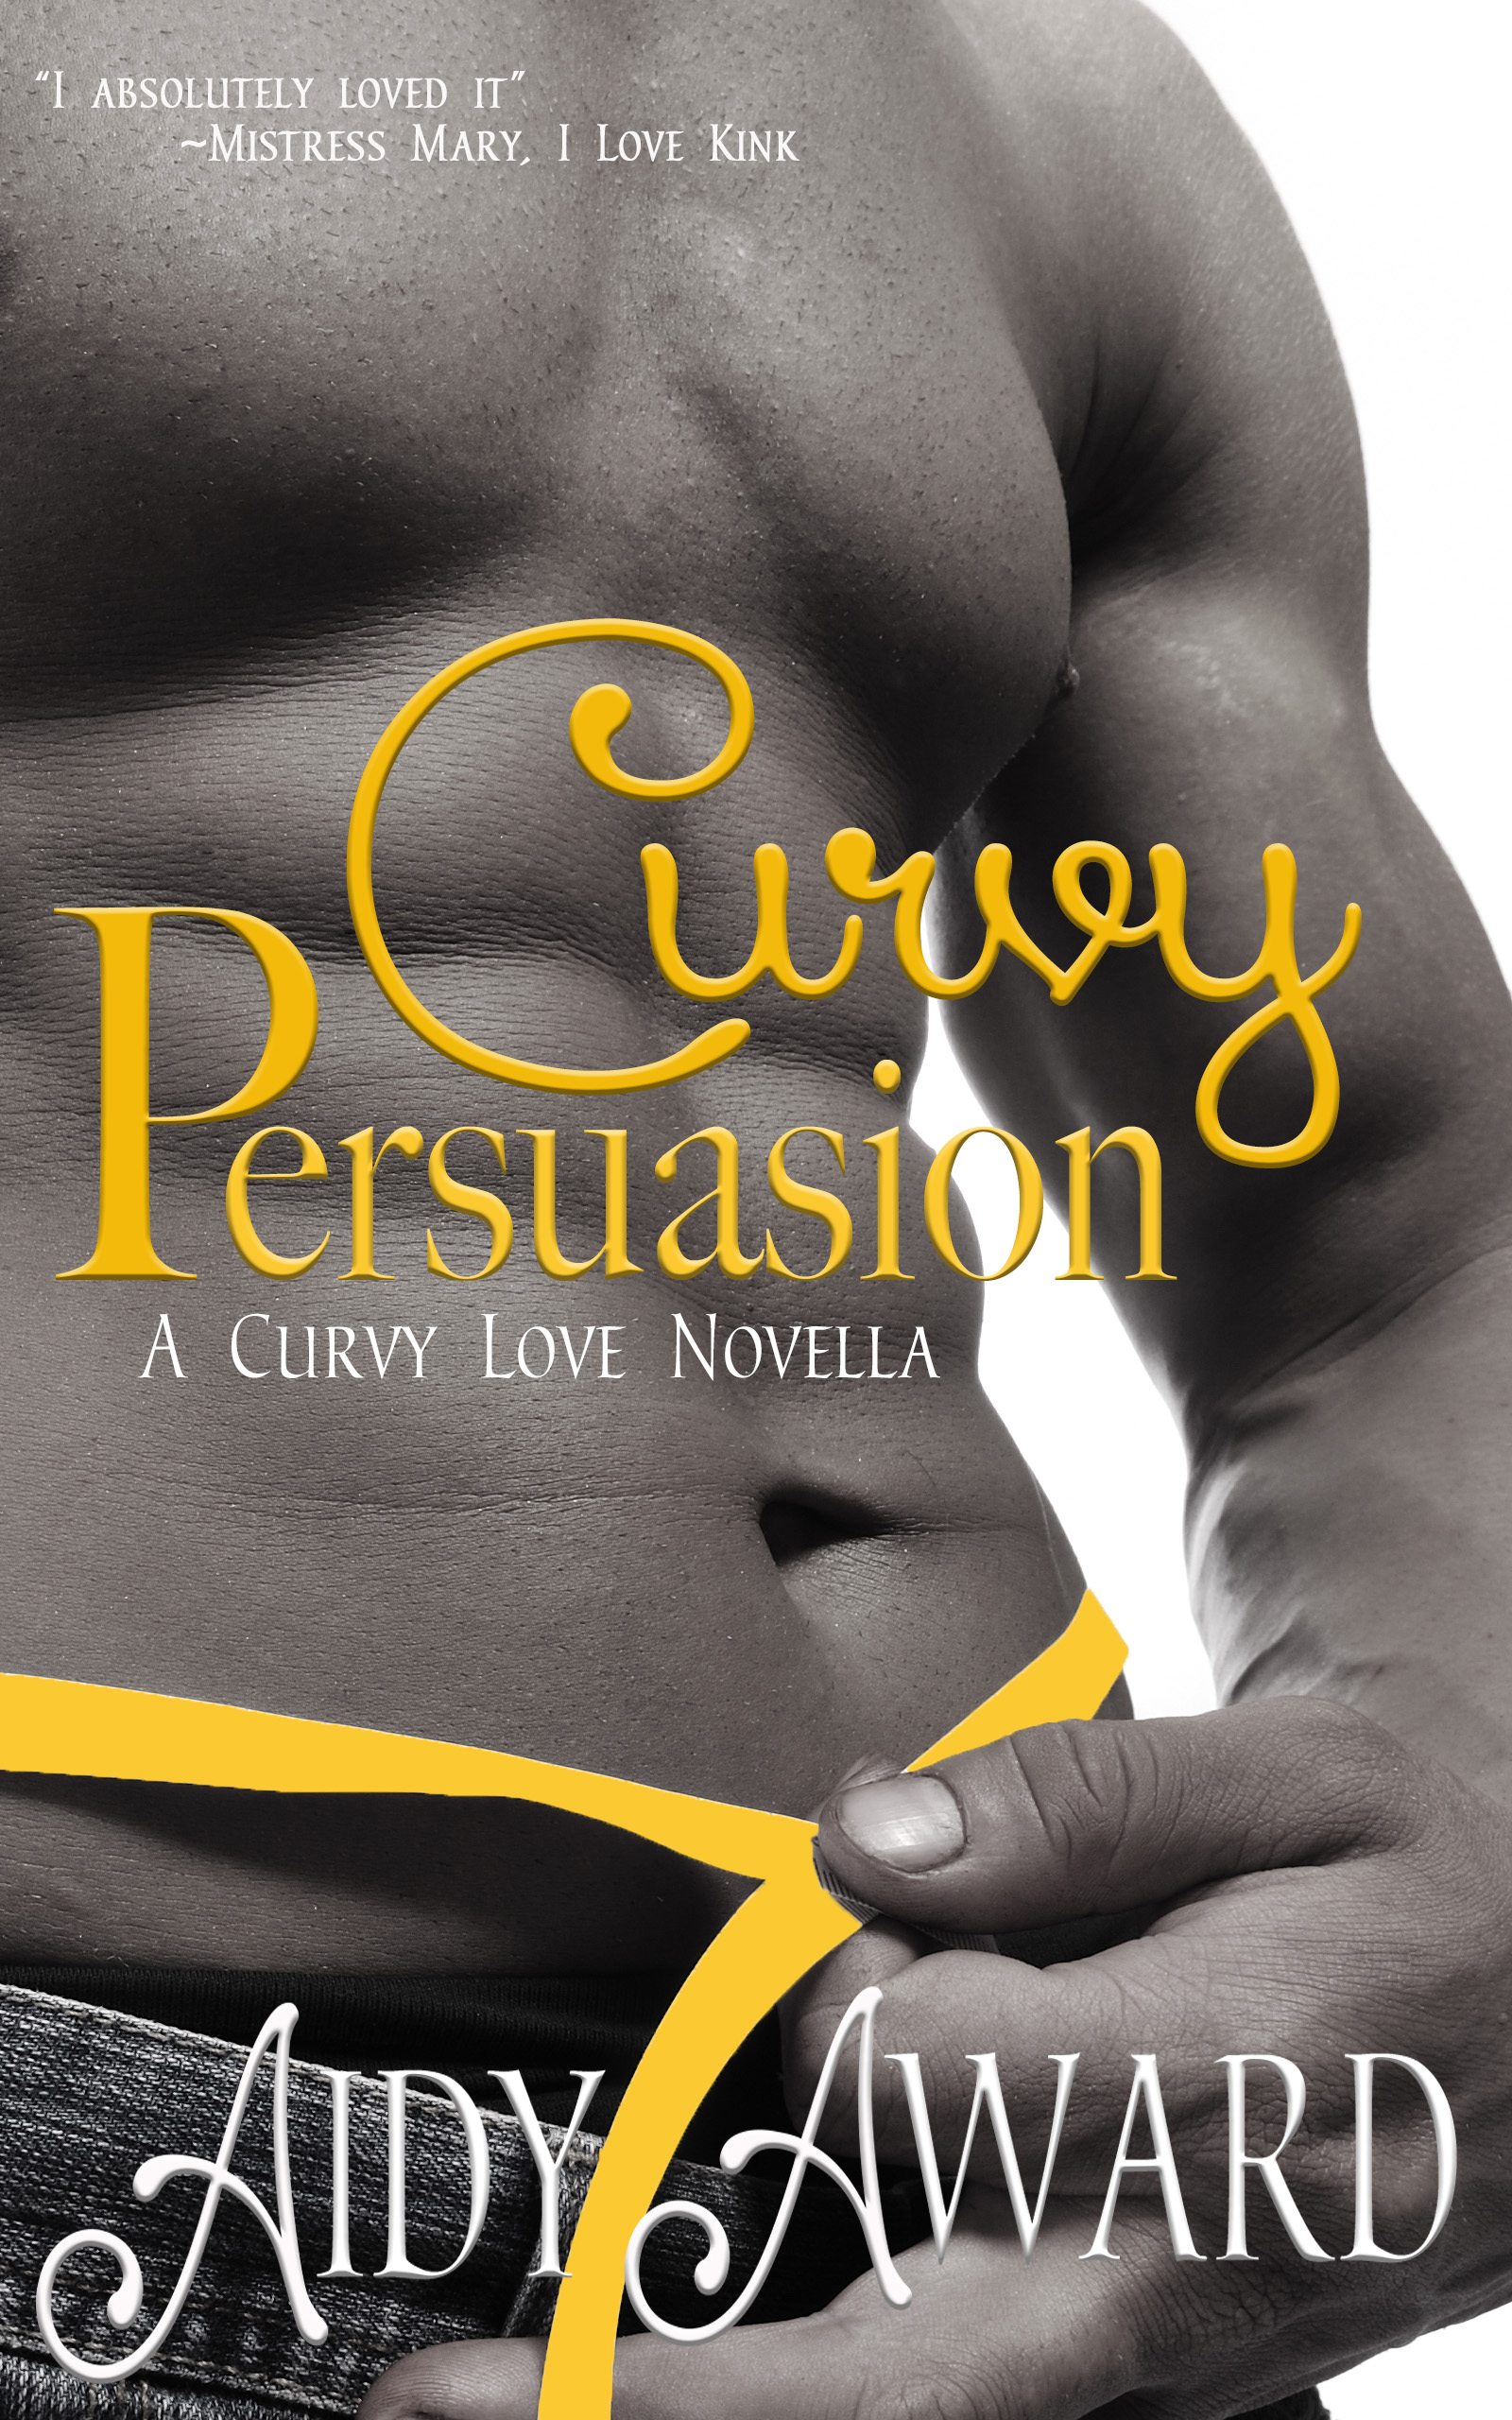 Curvy Persuasion Man with yellow ribbon